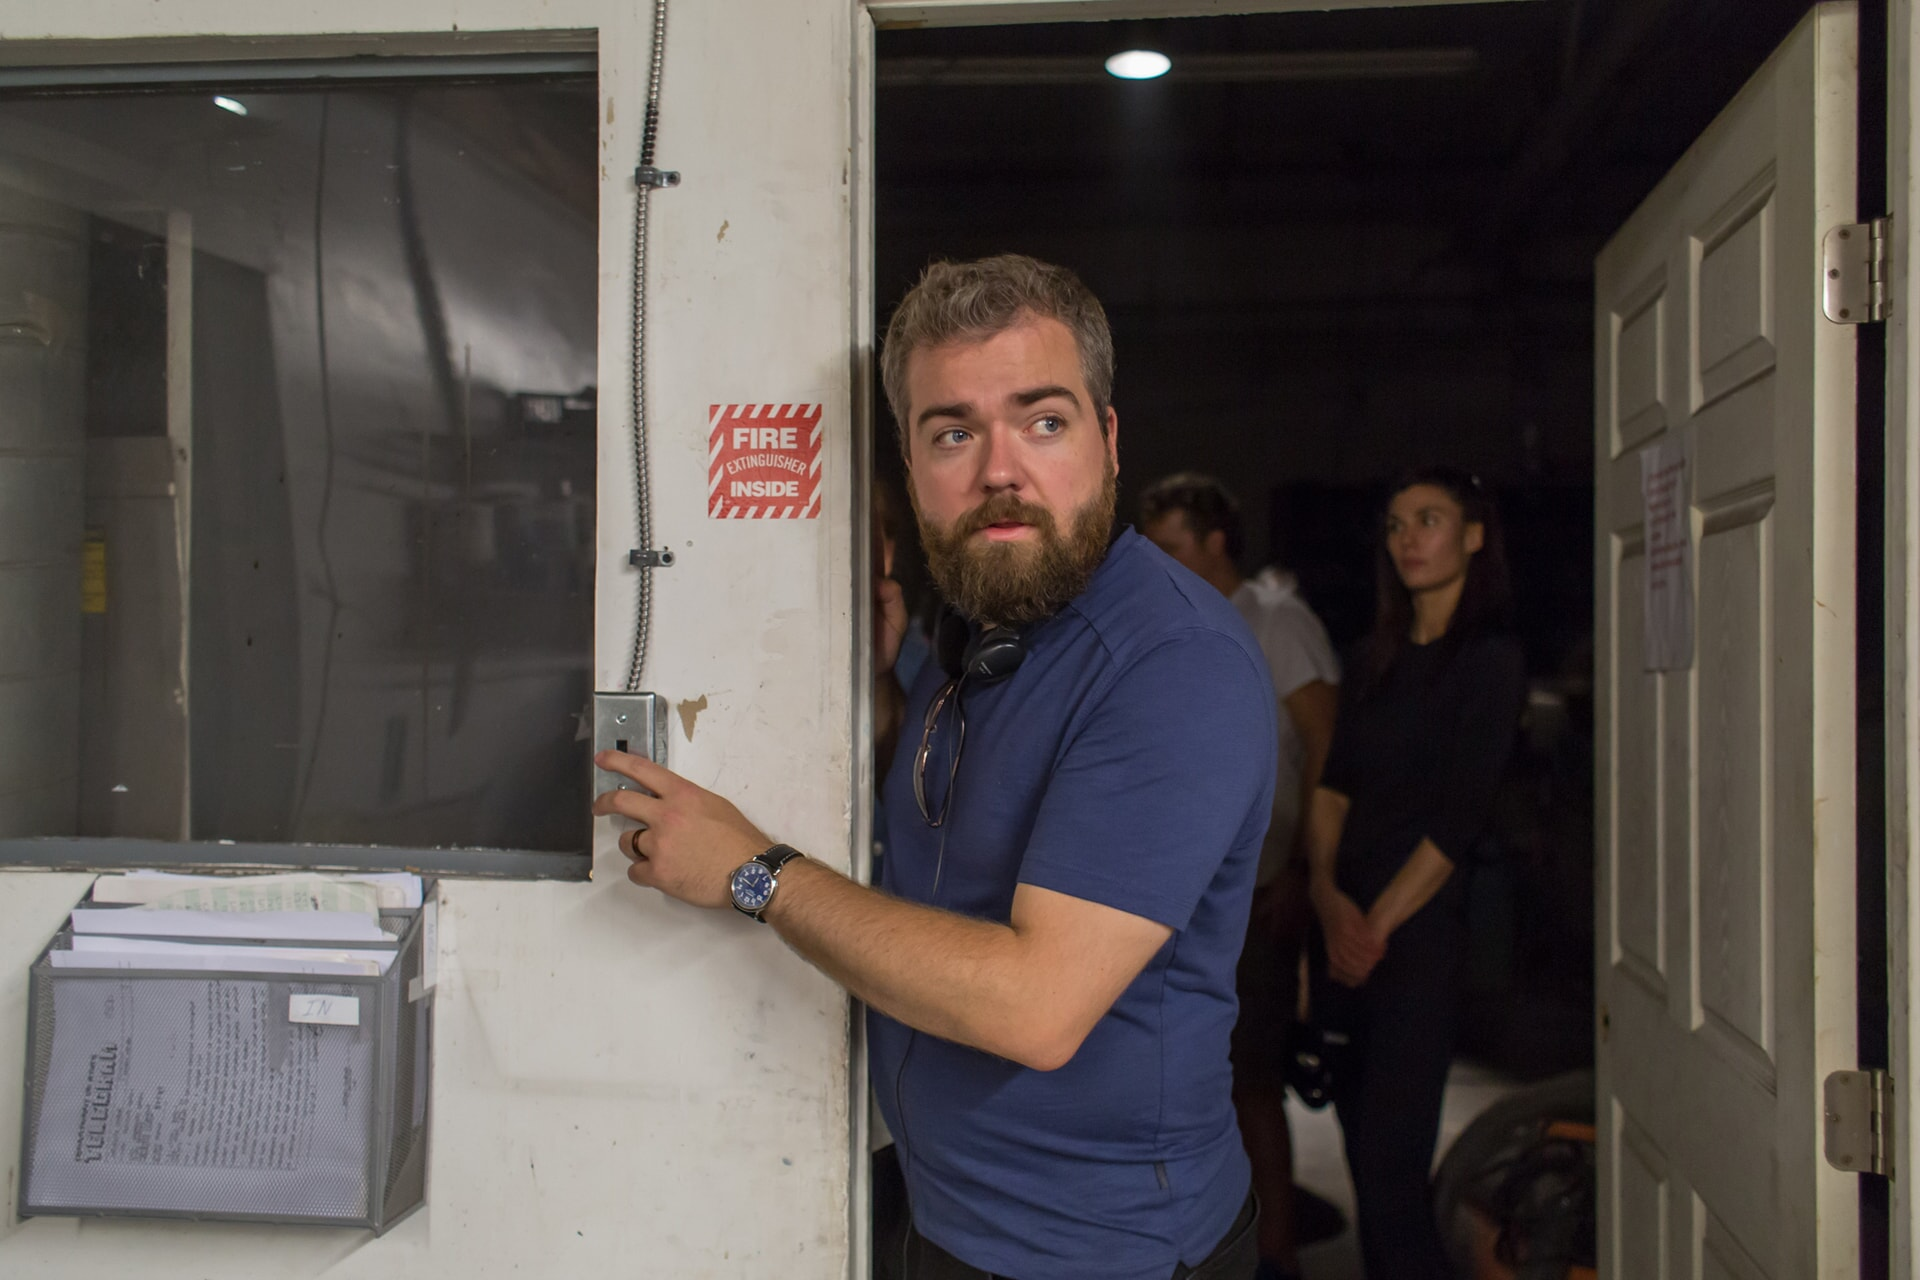 Director DAVID F. SANDBERG on the set